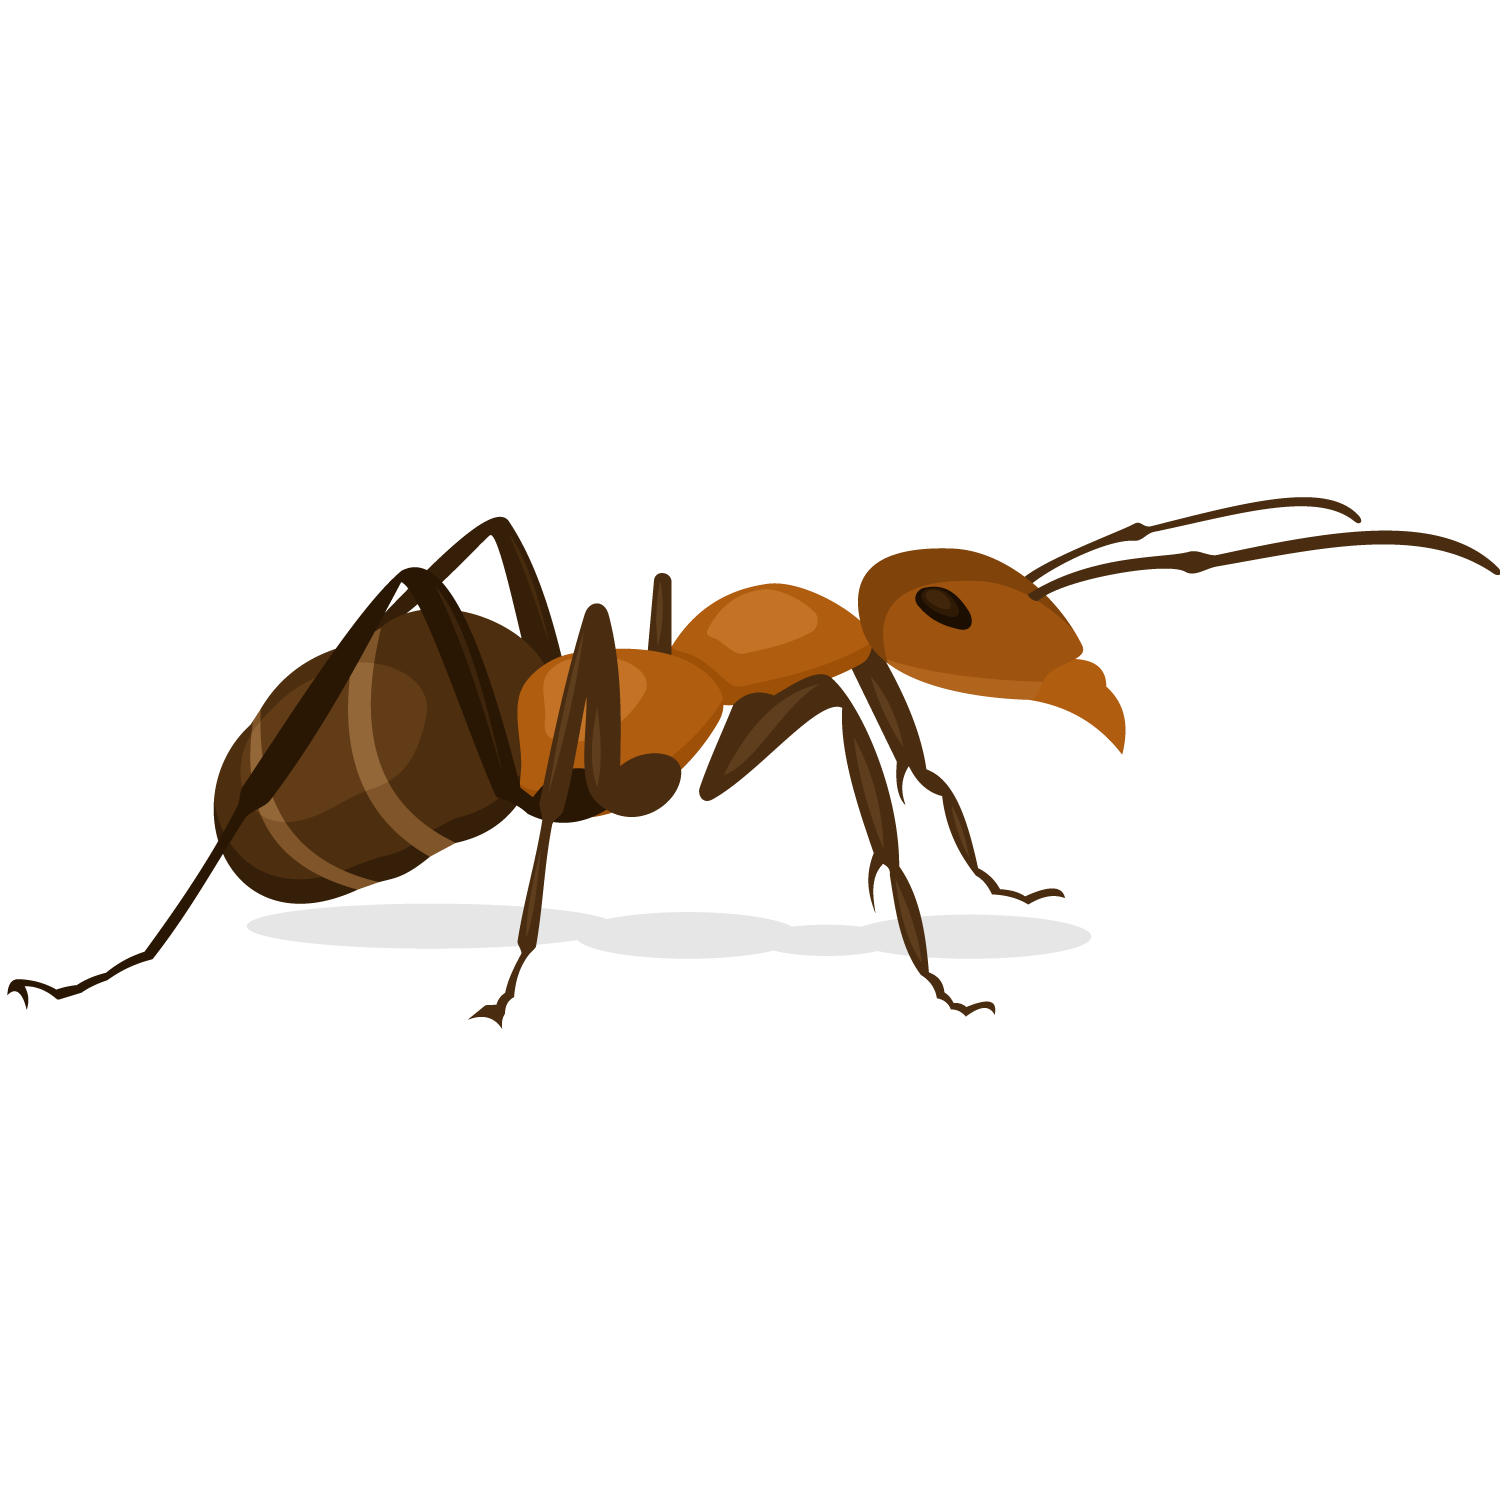 image Vector defintion arthropod. Ant insect x faktor